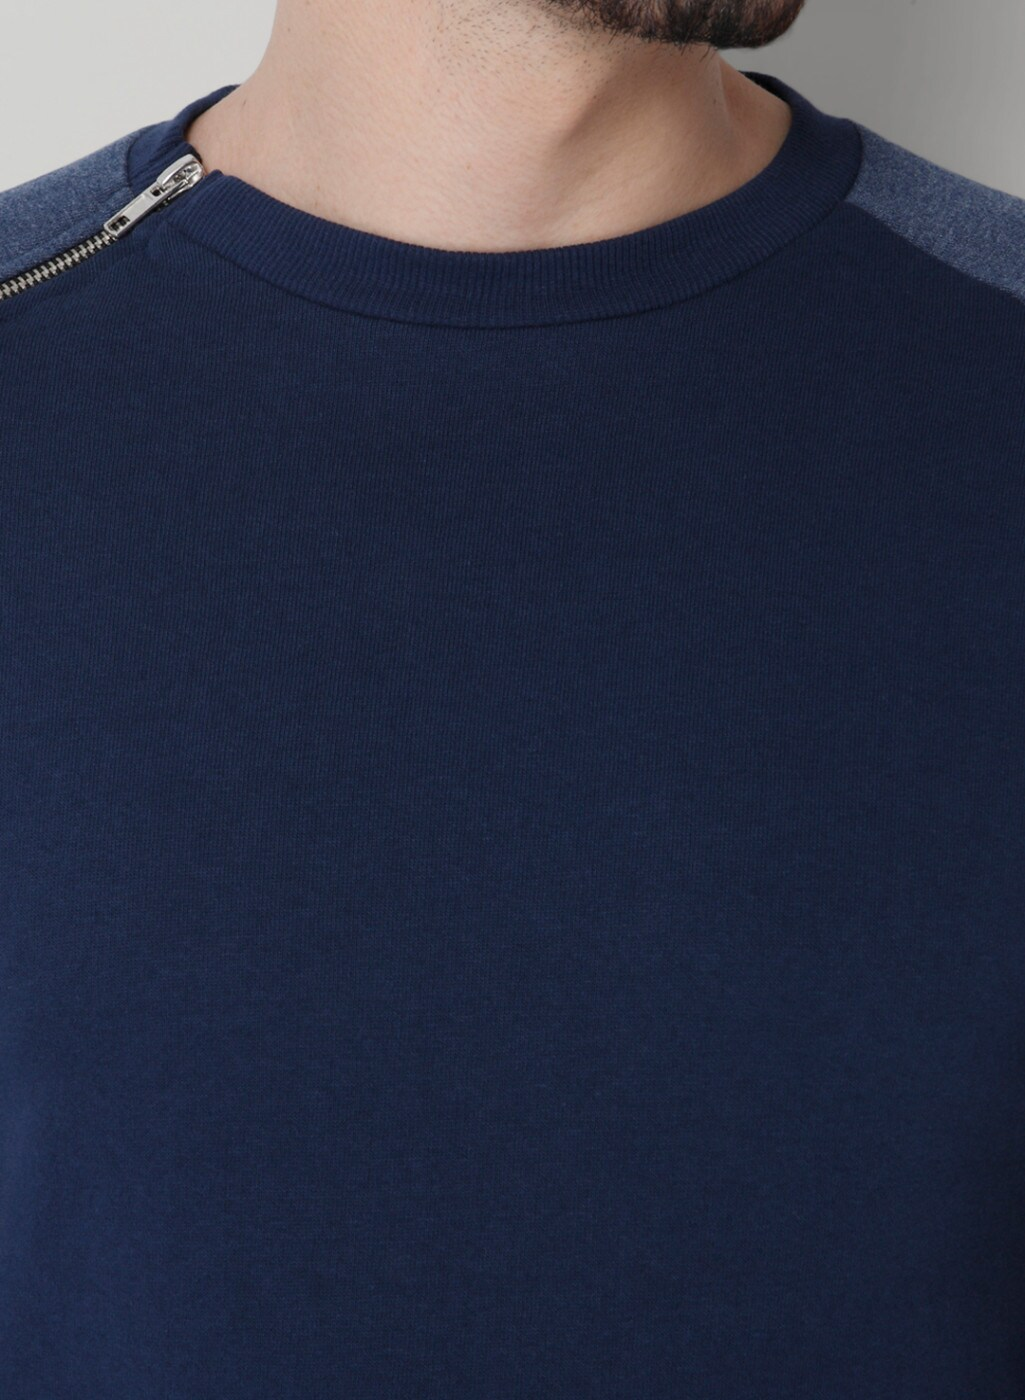 ONLY & SONS Navy Blue Solid Sweatshirt